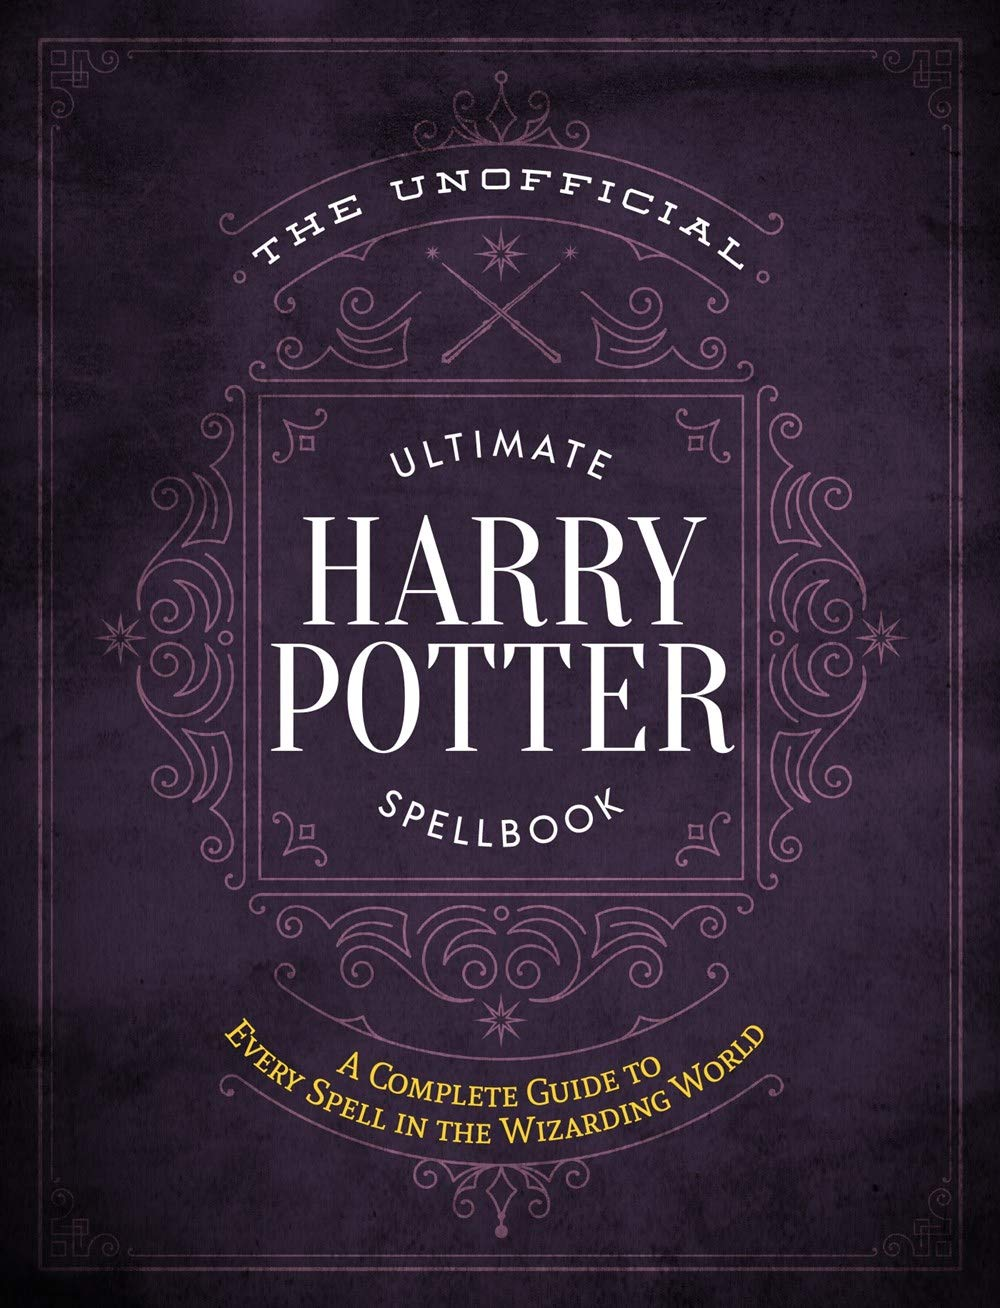 graphic regarding Harry Potter Spell Book Printable called : The Unofficial Final Harry Potter Spellbook